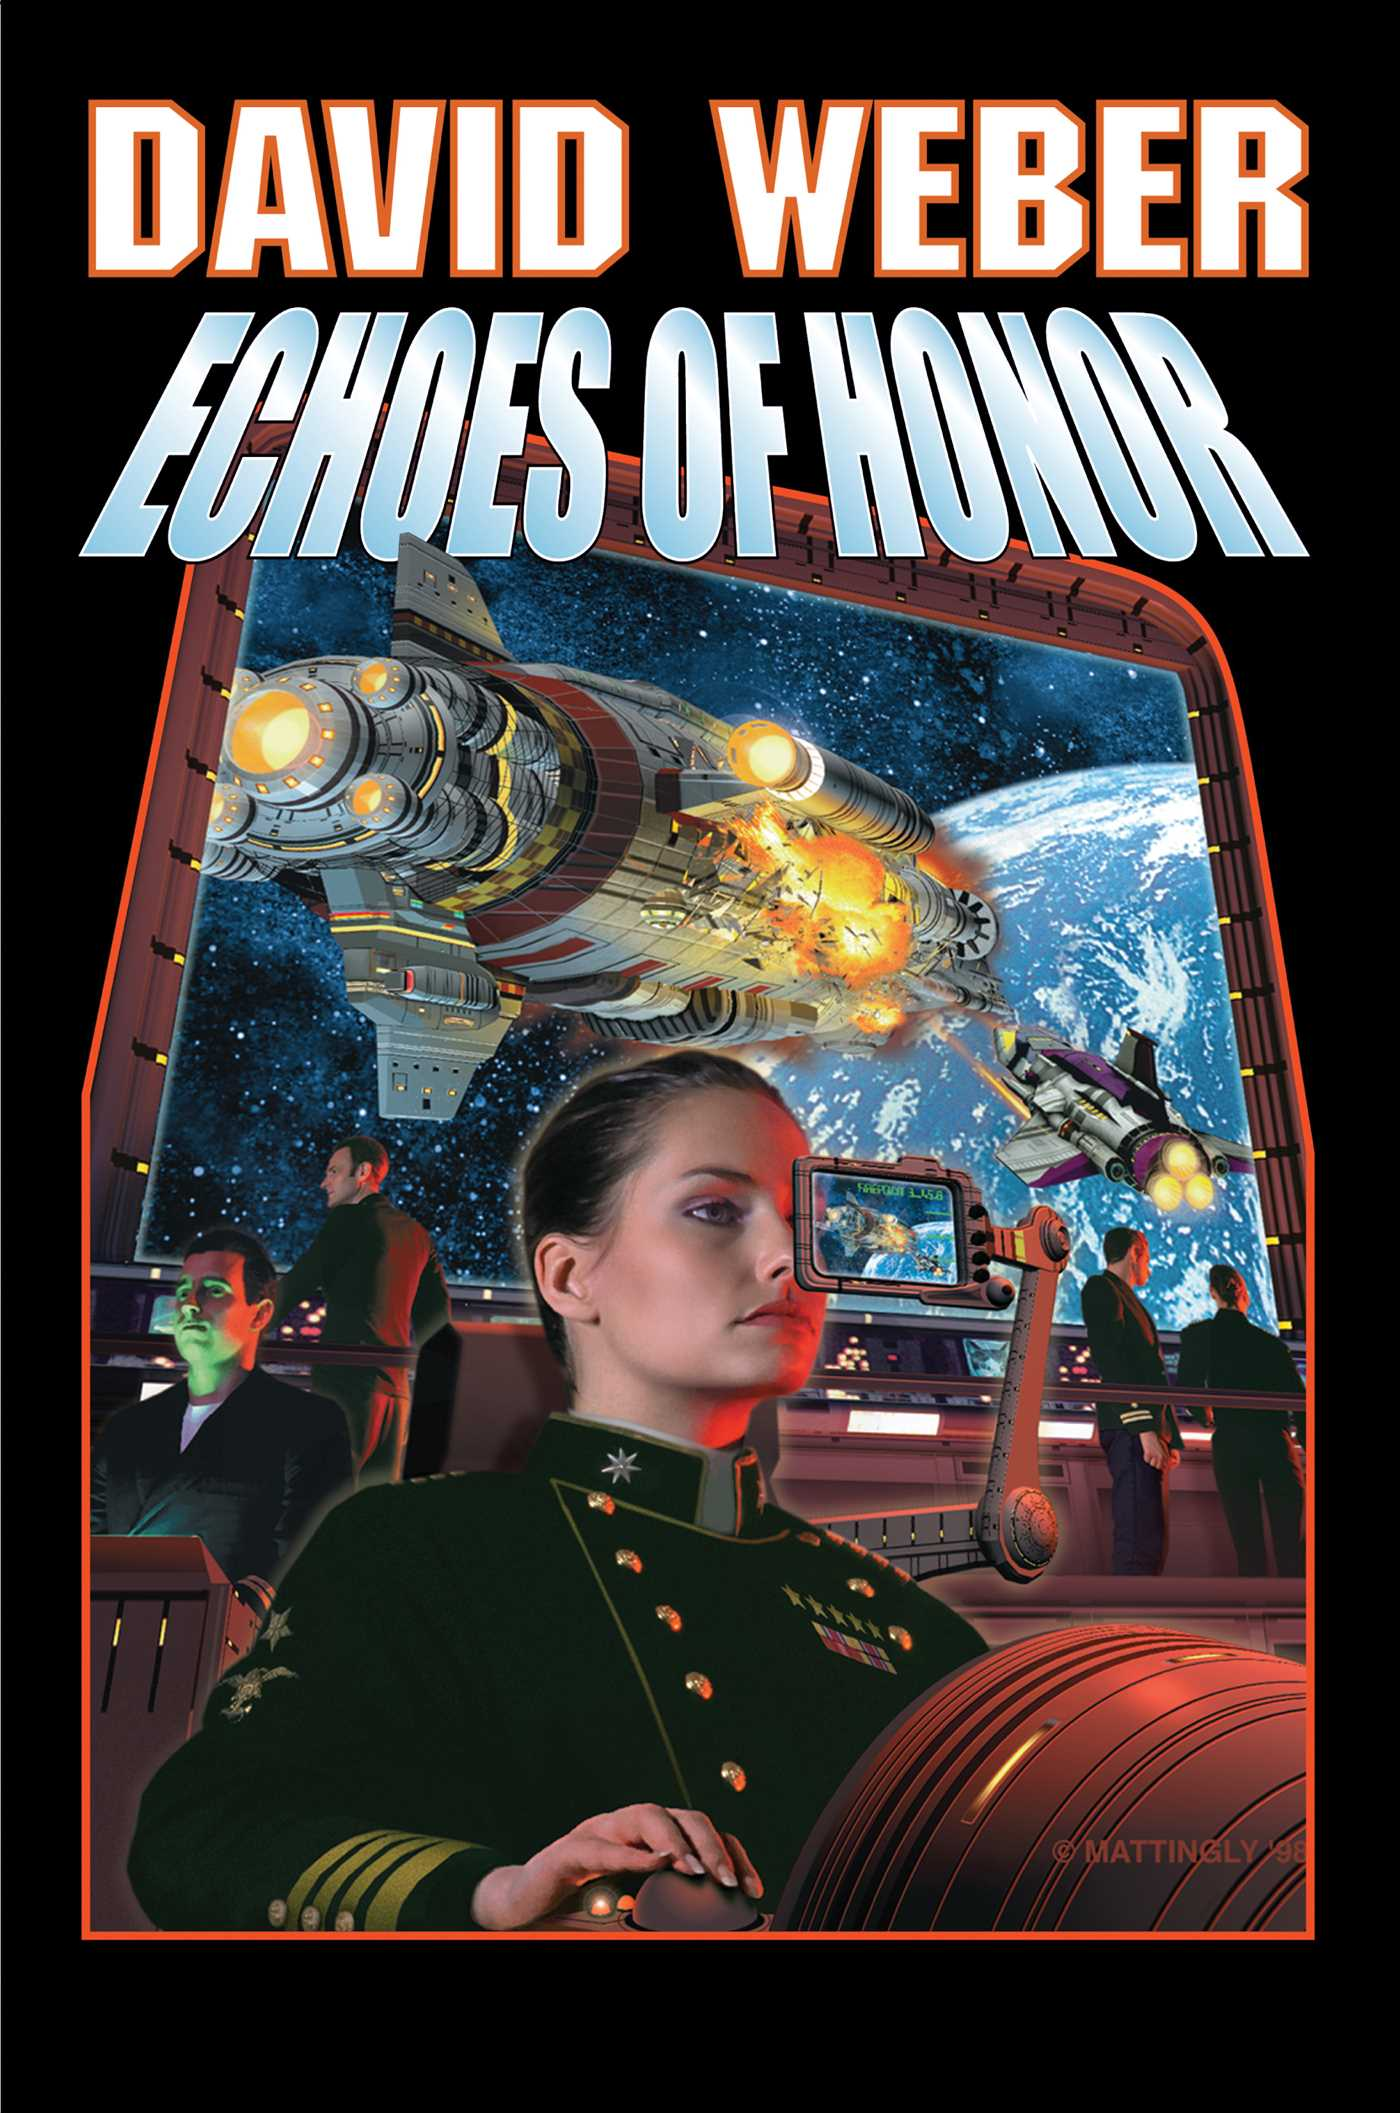 Echoes-of-honor-9780671878924_hr